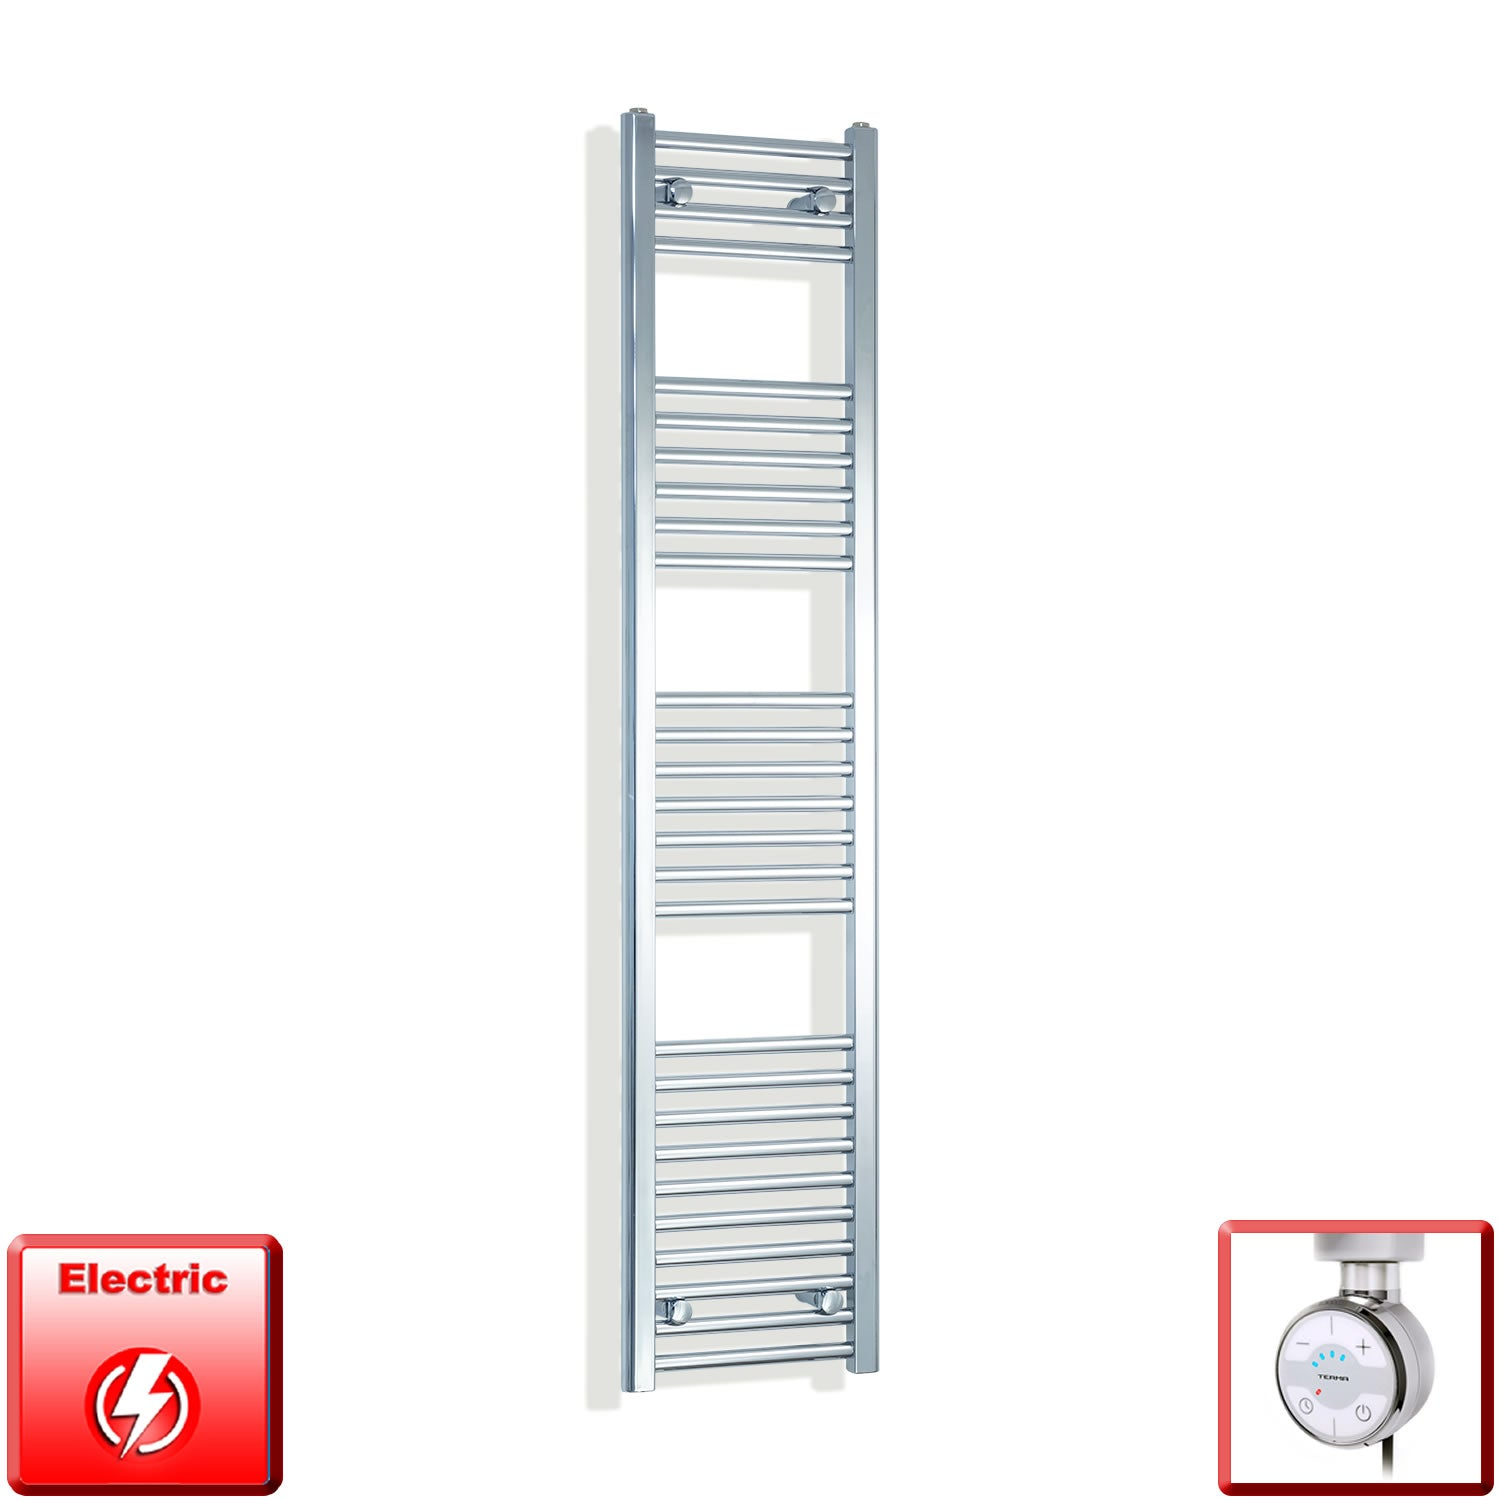 300mm Wide 1600mm High Pre-Filled Chrome Electric Towel Rail Radiator With Thermostatic MOA Element